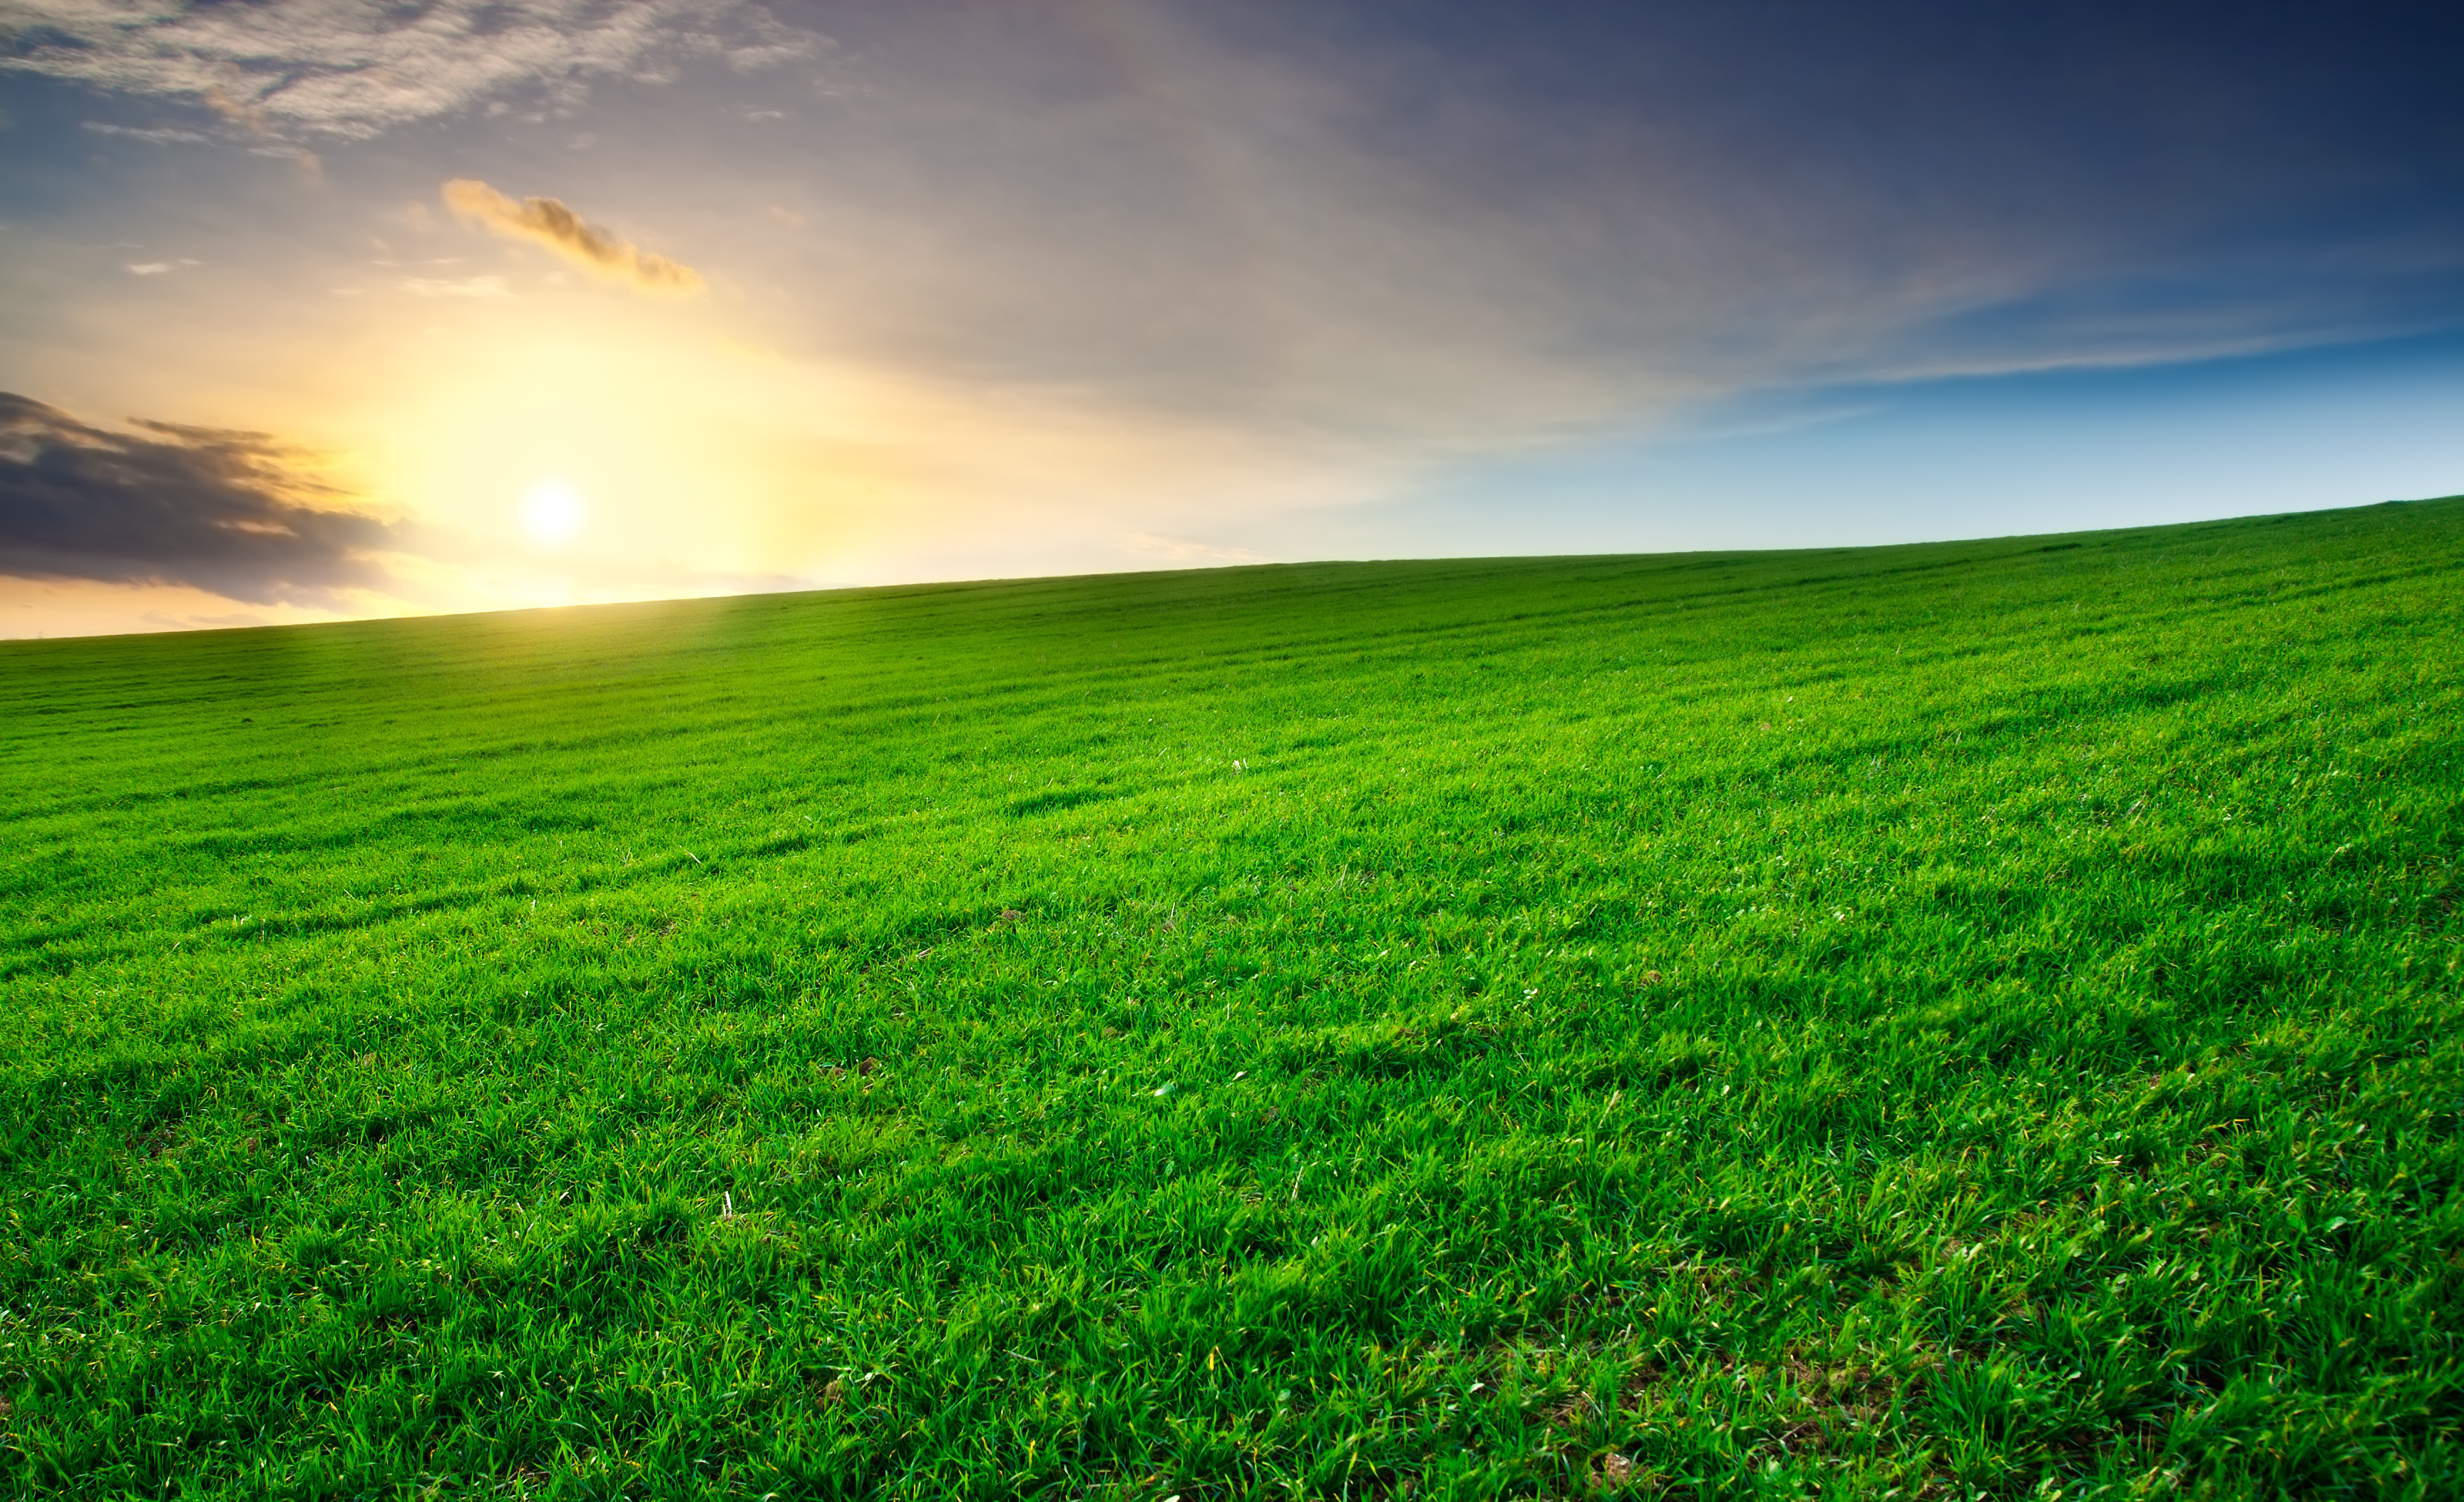 Green Field At Sunset With Clouds In The Background Clearing Thoughts Jpg 183 The Epic Self